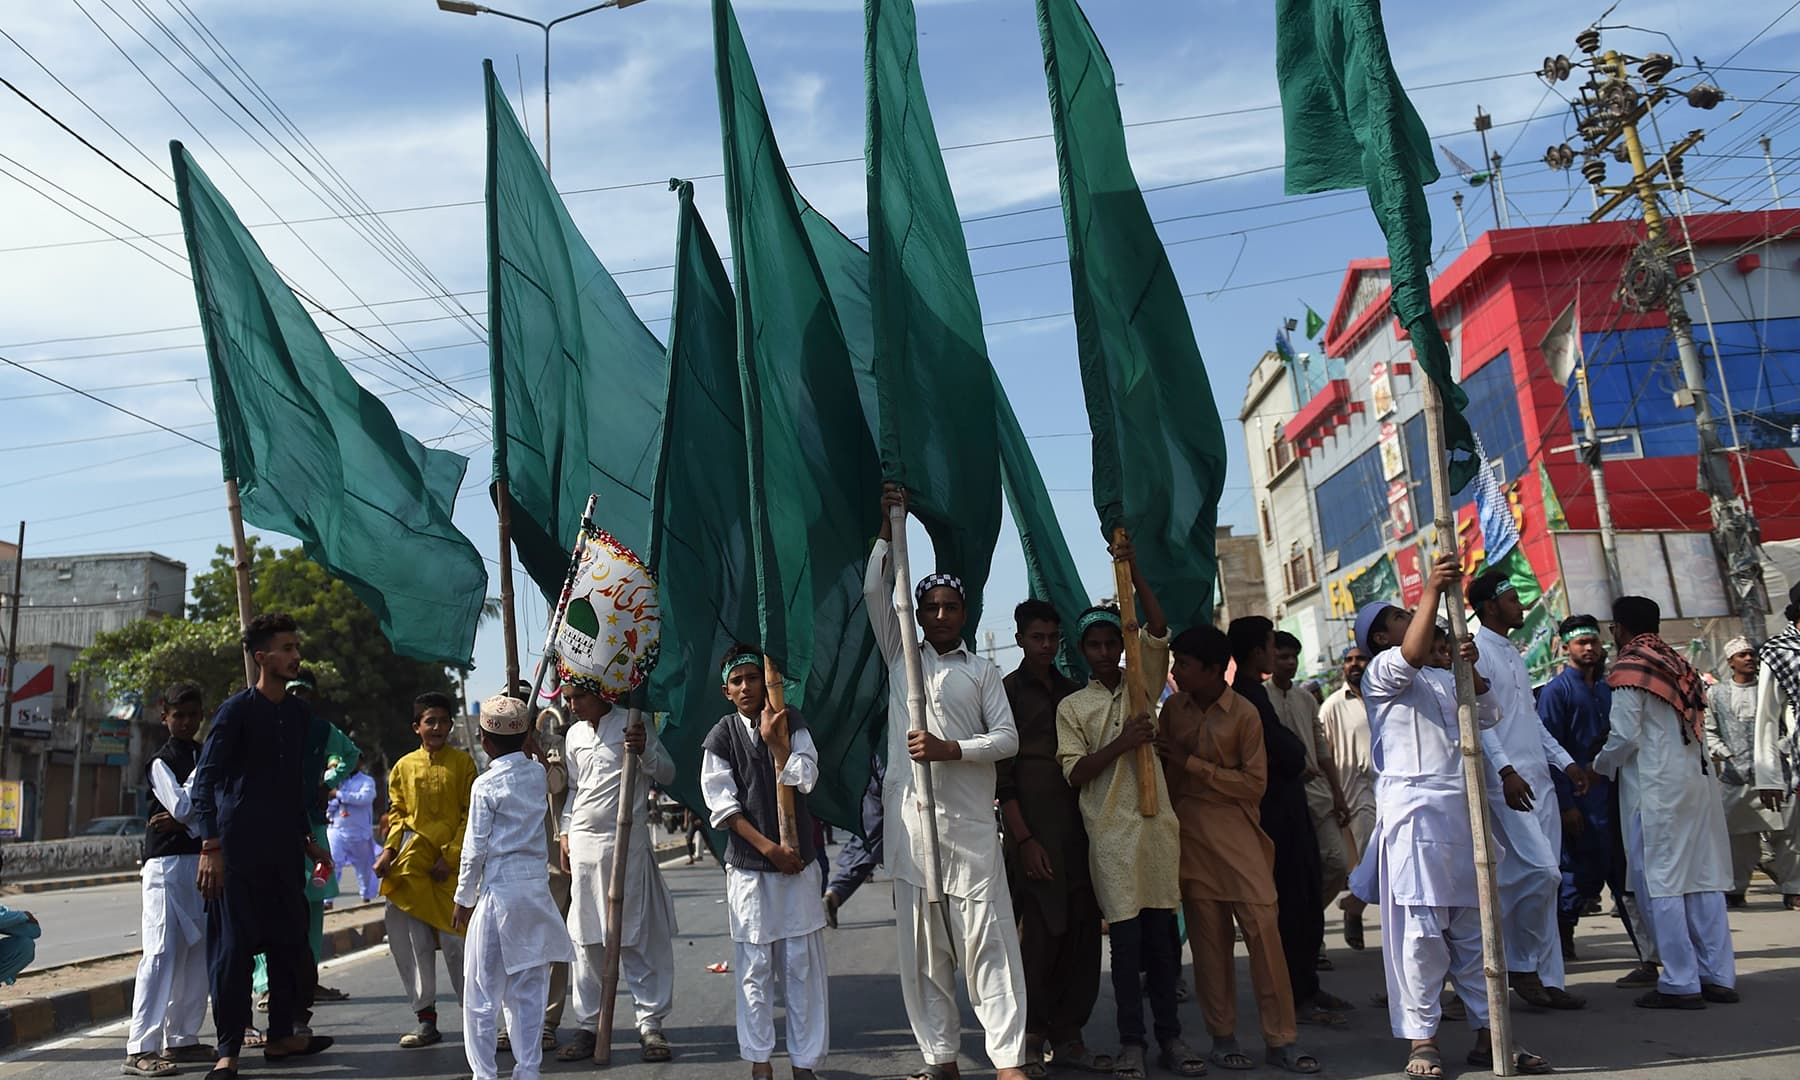 Devotees carry flags in a procession to mark 12 Rabi-ul-Awwal in Karachi on Sunday. — AFP